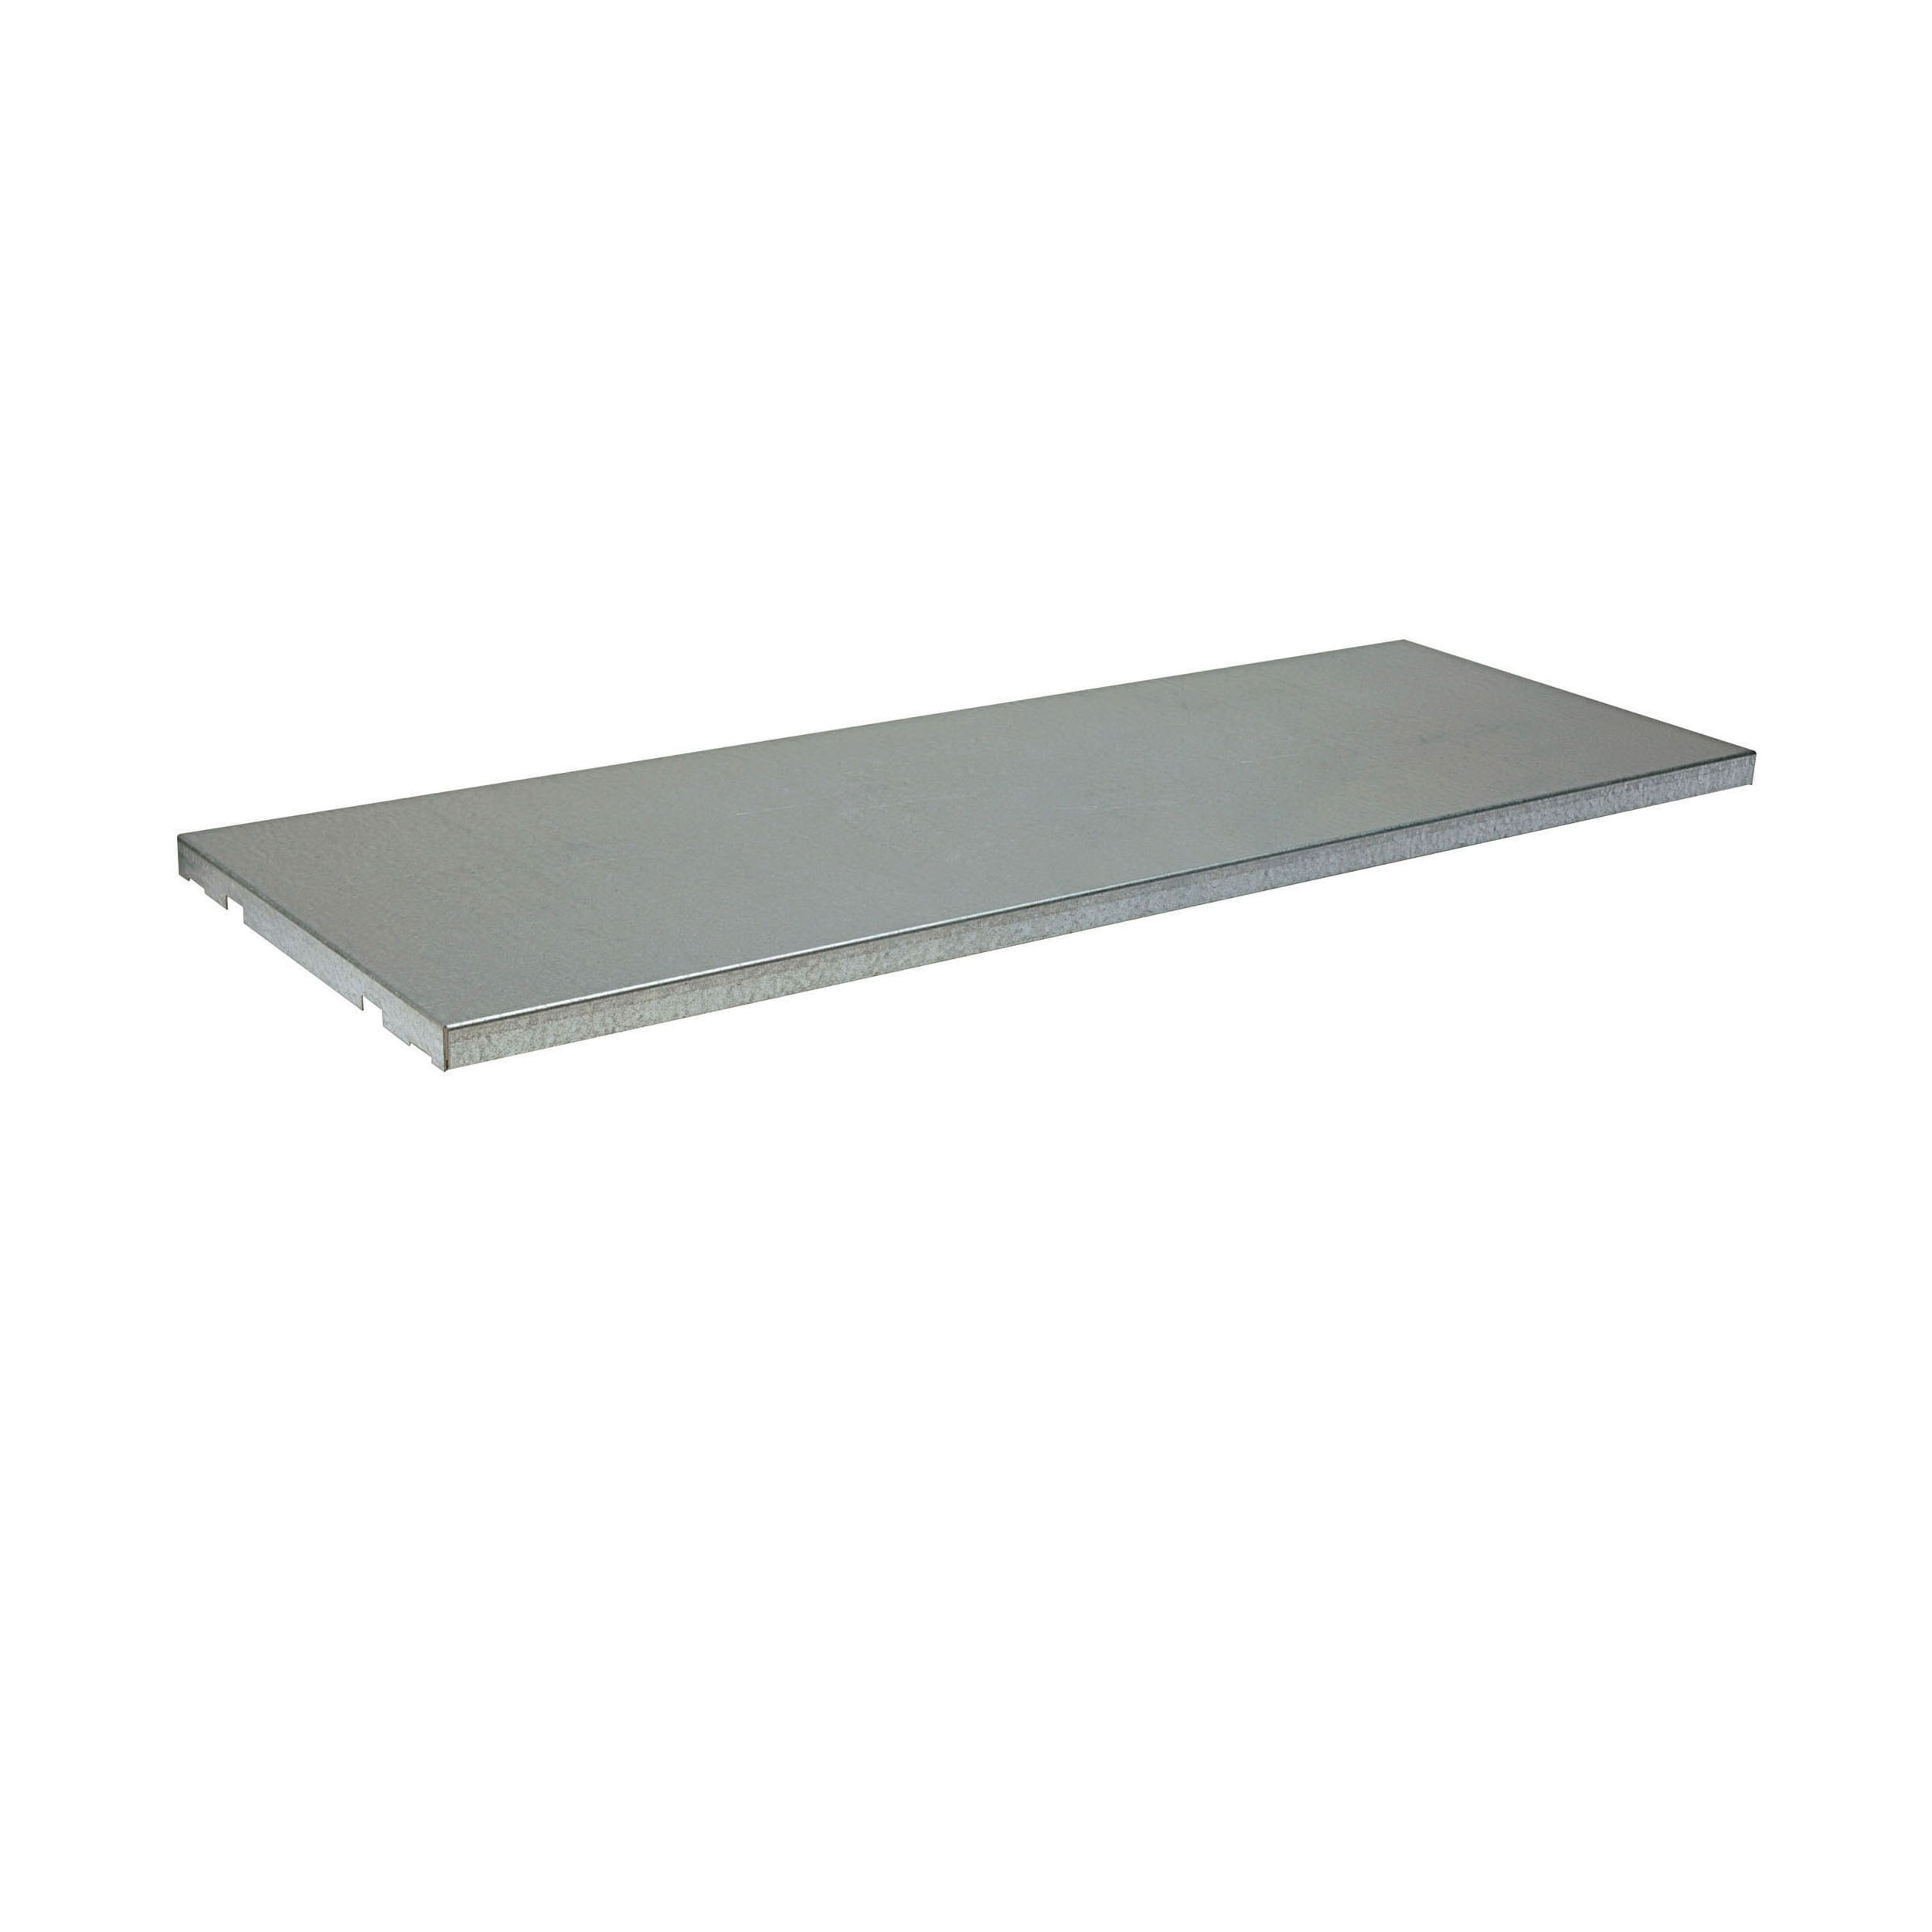 Justrite® SpillSlope® 29939 Shelf, For Use With 22 gal Undercounter Safety Cabinets, Silver